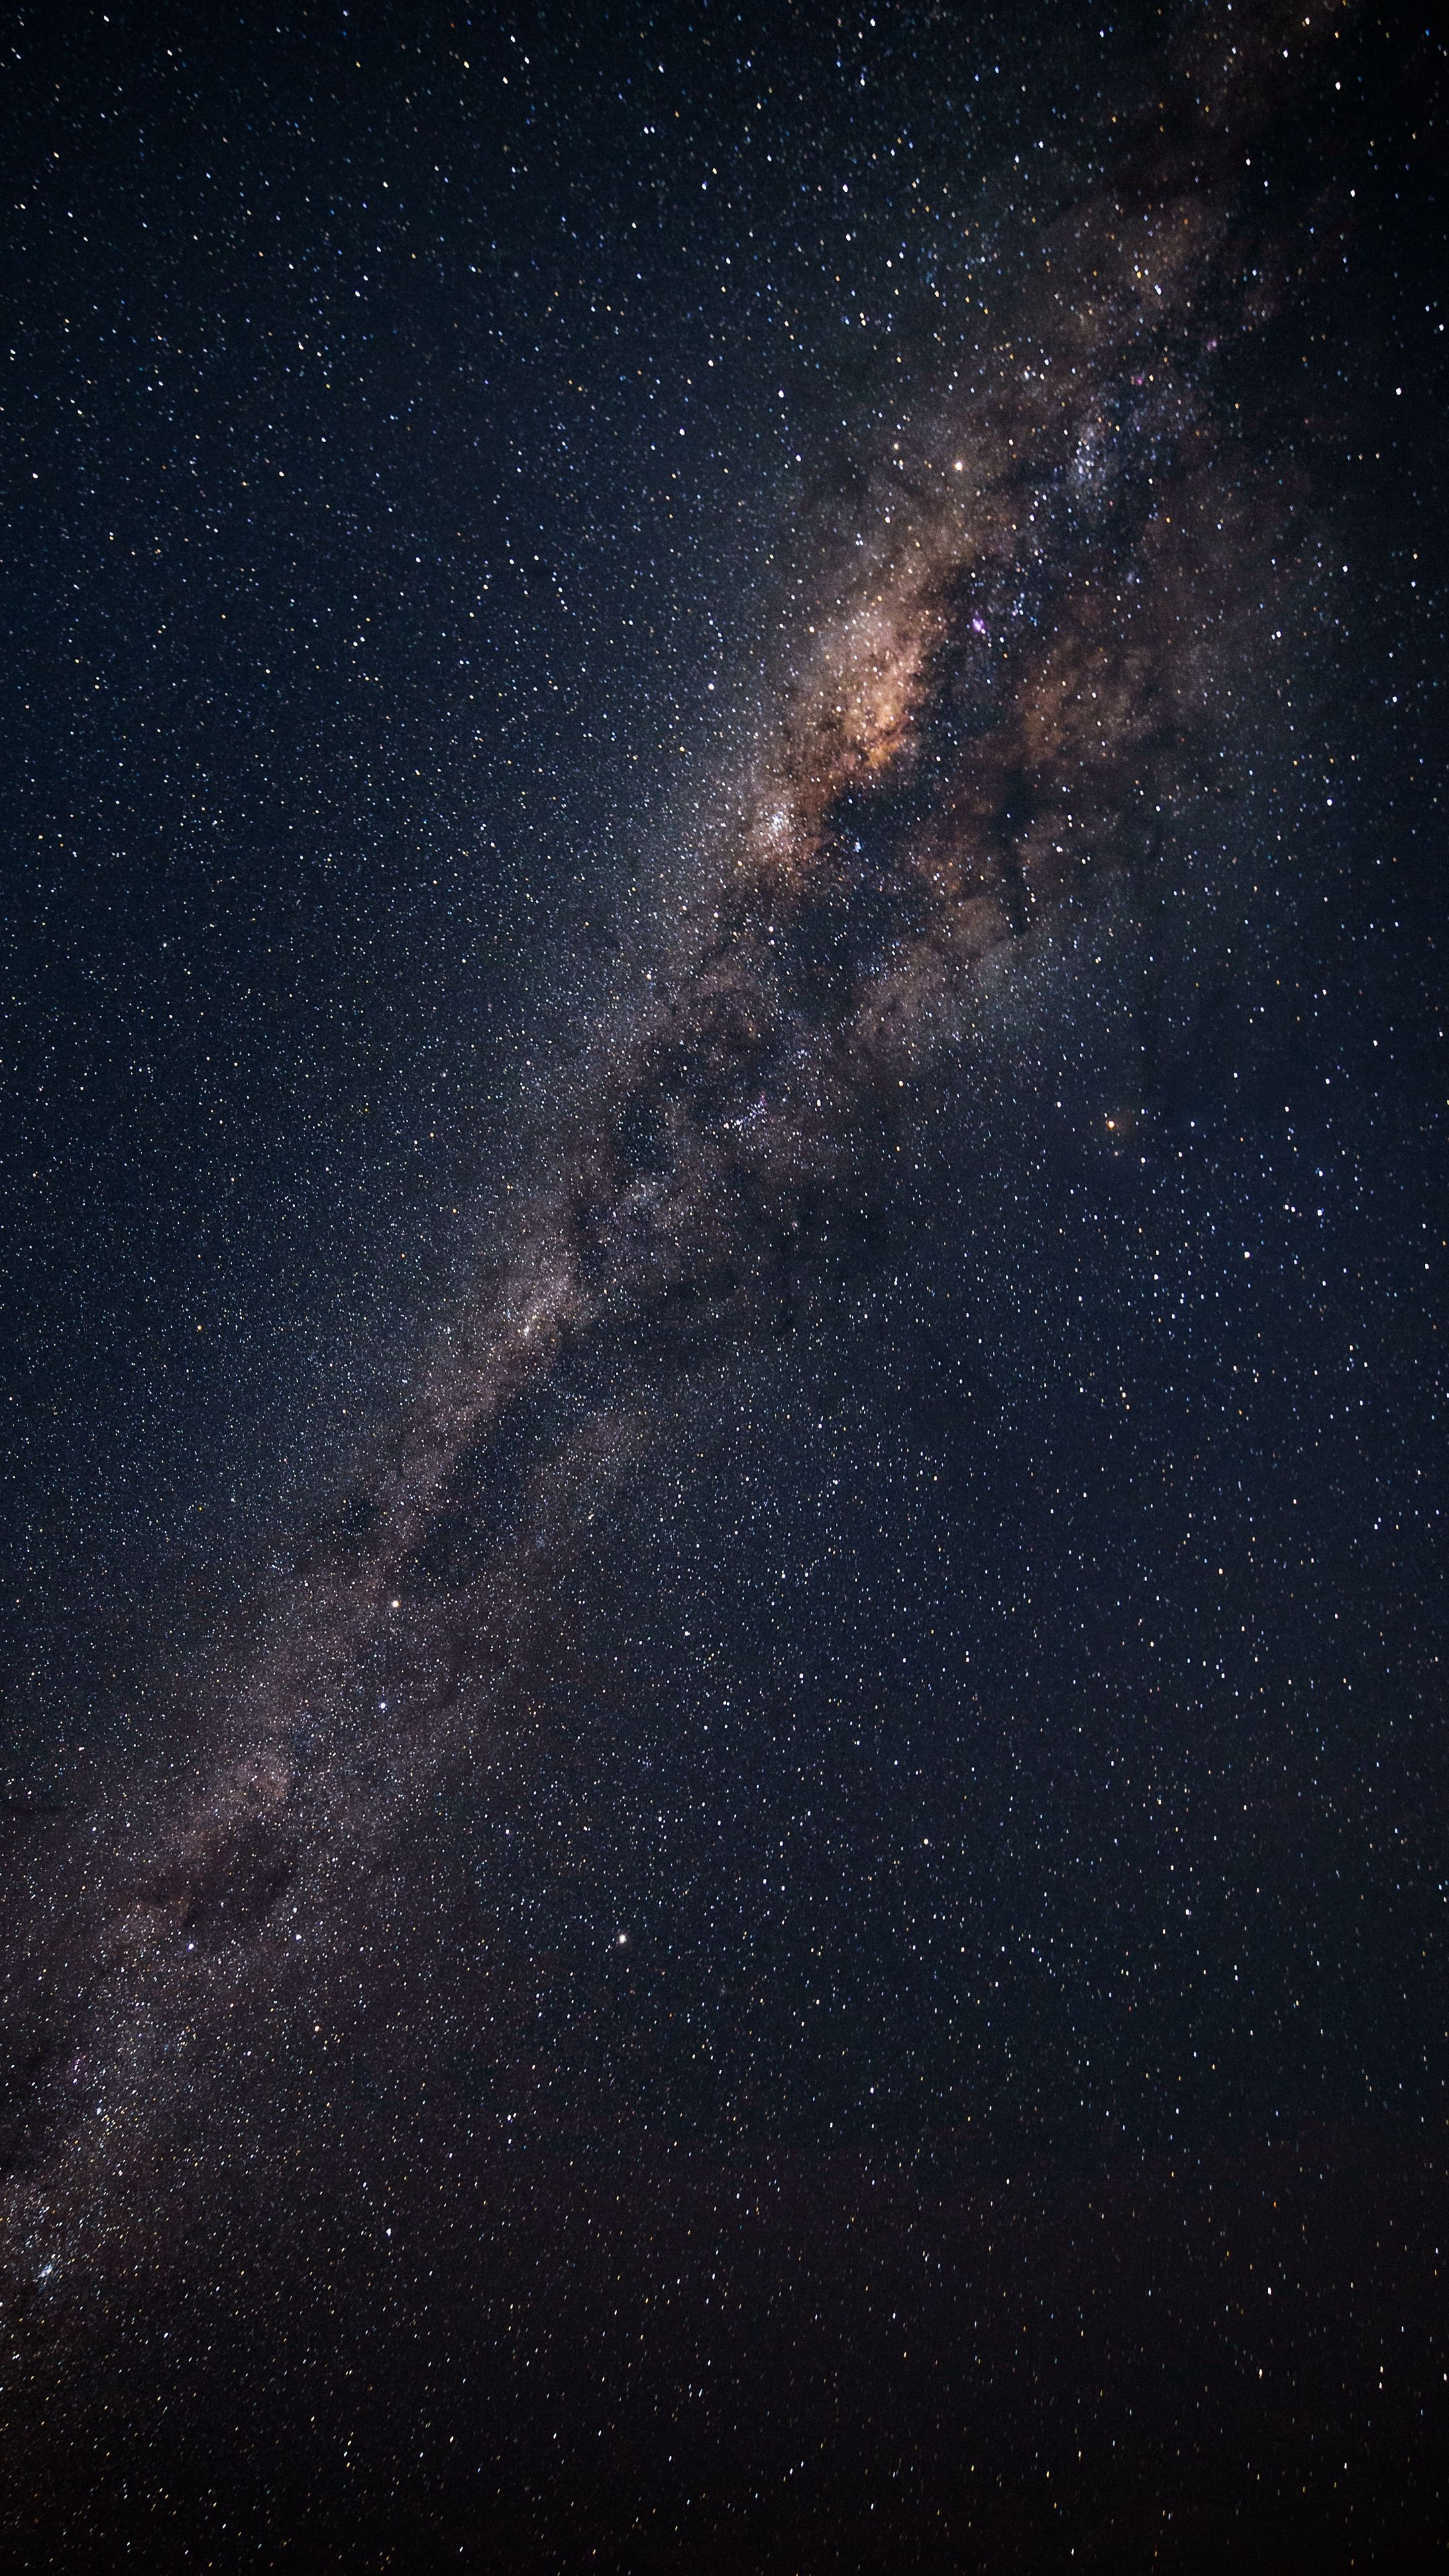 2160x3840 Wallpaper Sternenhimmel Milchstrasse Astronomie Galaxis In 2020 Galaxy Wallpaper Iphone Milky Way Photography Galaxy Wallpaper